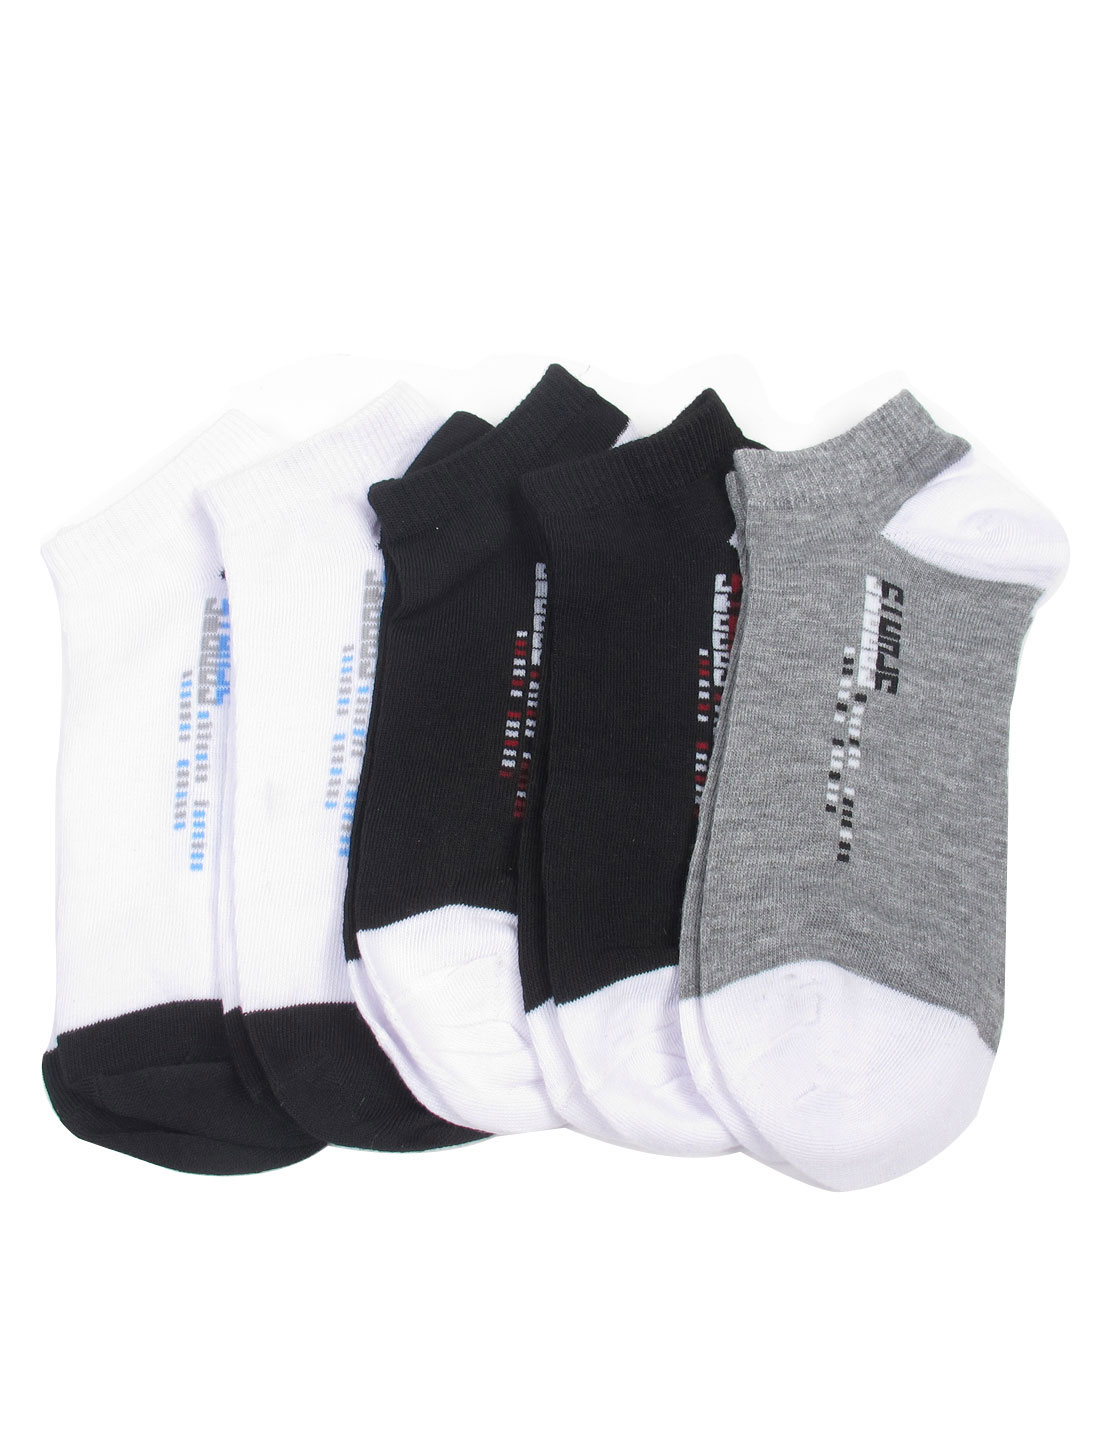 5 Pairs Cotton Polyester Spandex Sports Short Socks for Men